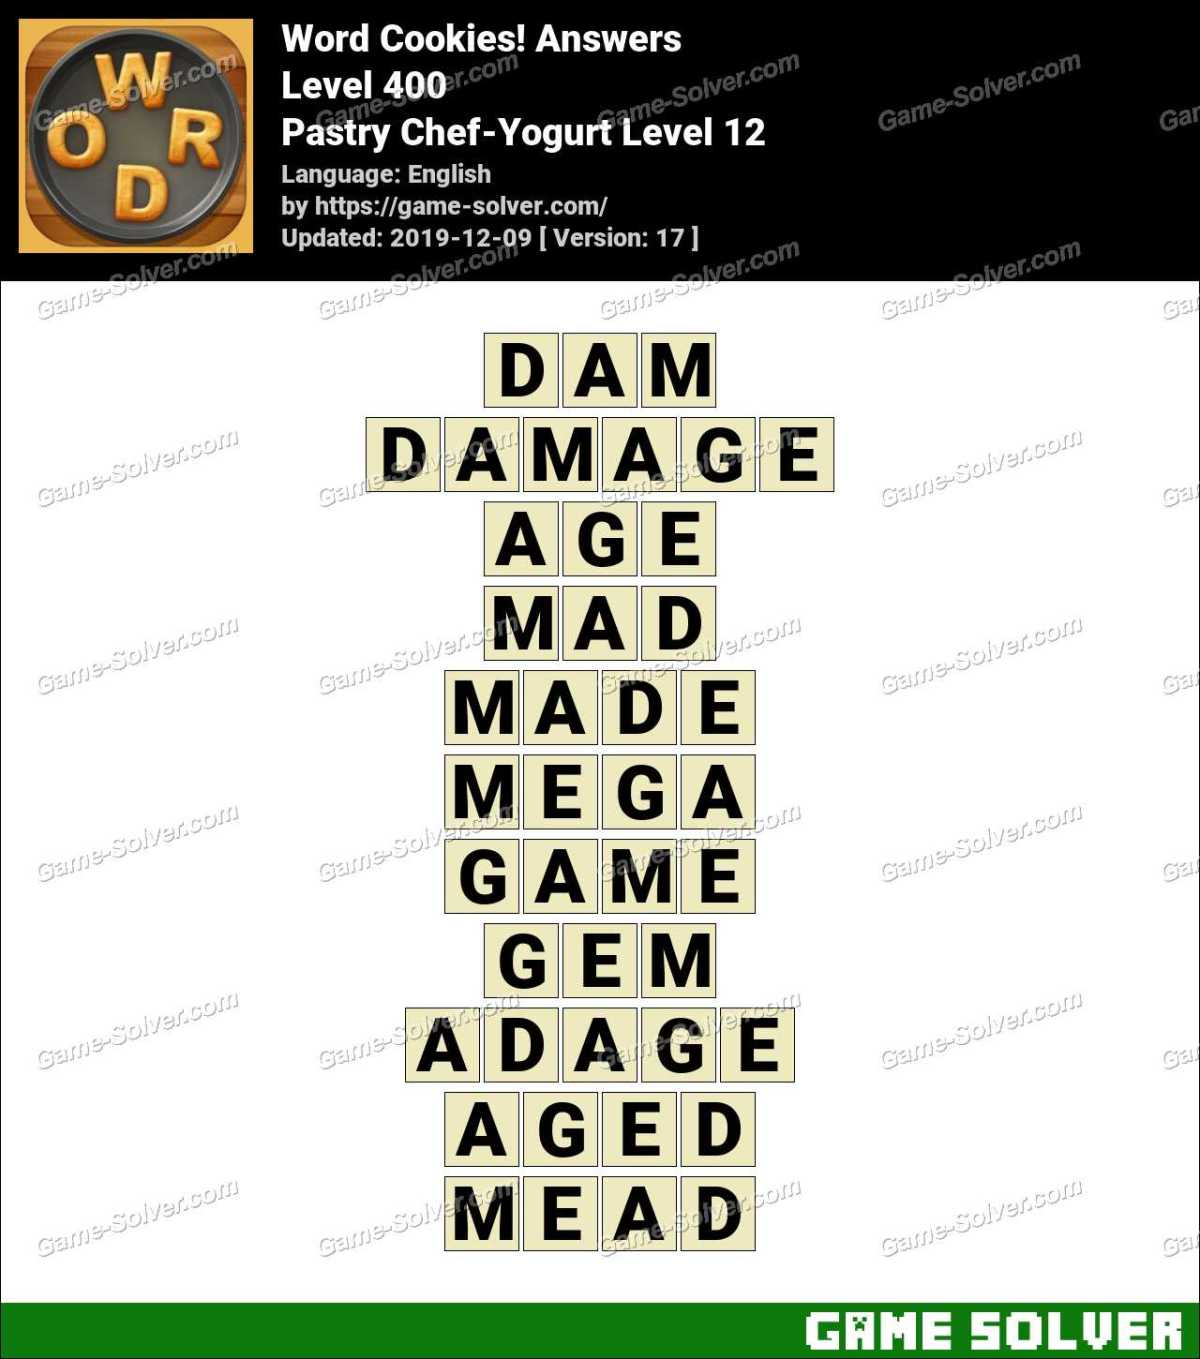 Word Cookies Pastry Chef-Yogurt Level 12 Answers